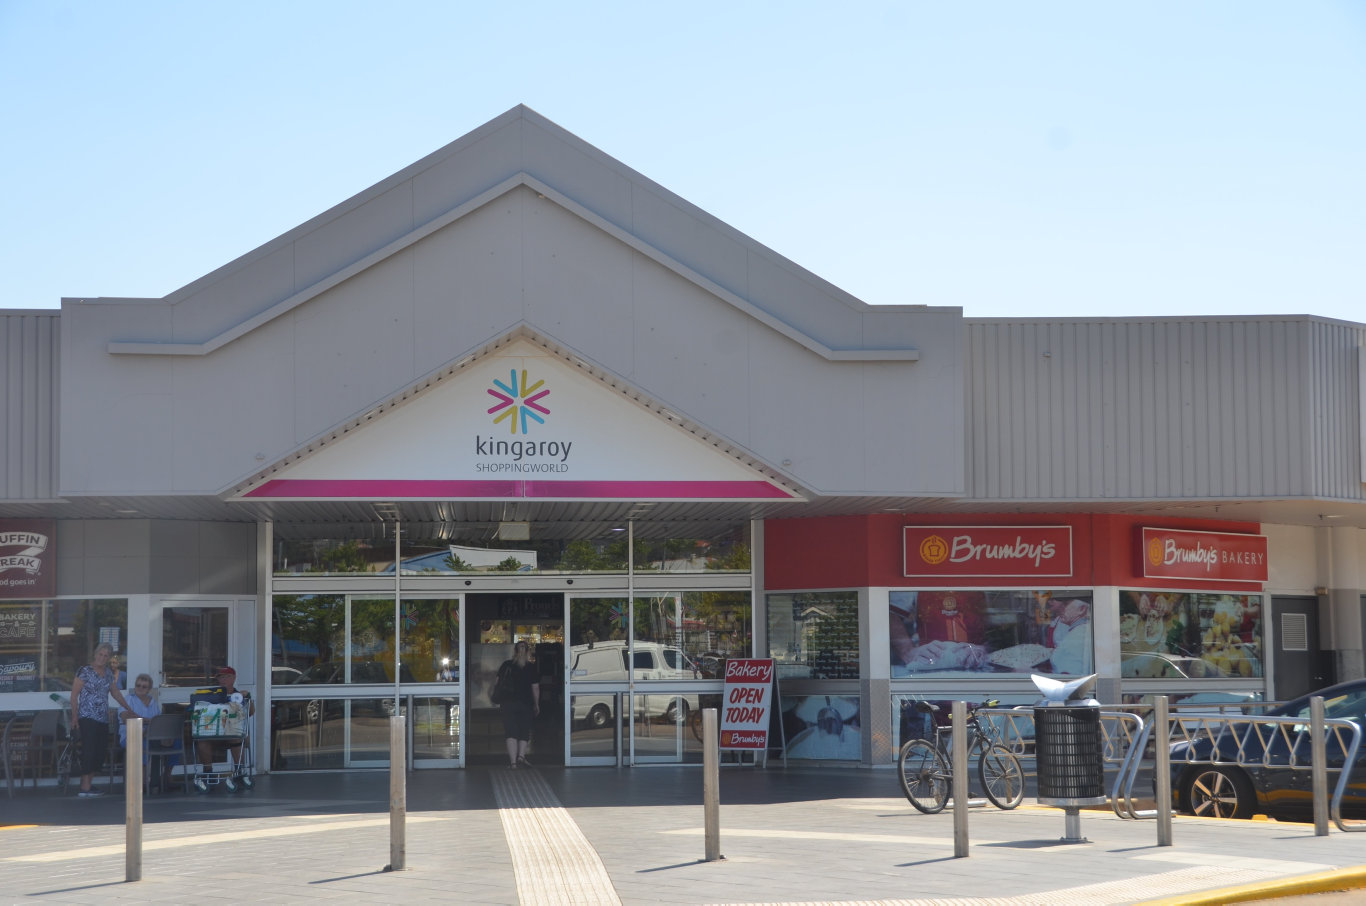 NO NEED FOR ALARM: Shoppers were asked to excuate the shopping centre in Kingaroy this afternoon after a false alarm went off alerting local fire crews to the scene.